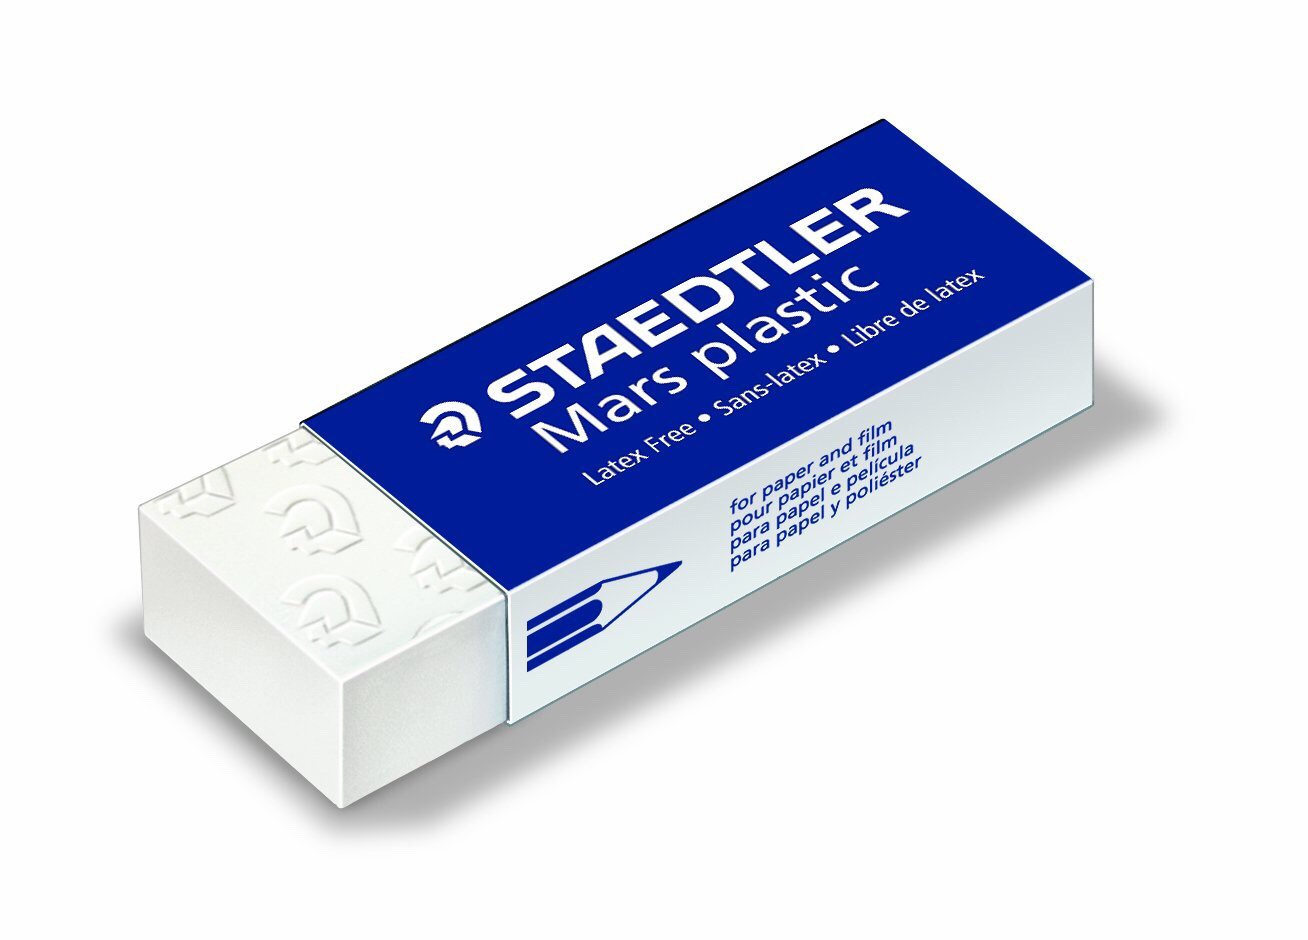 1 eraser (preferably something rubbery and soft, not the hard pink ones)